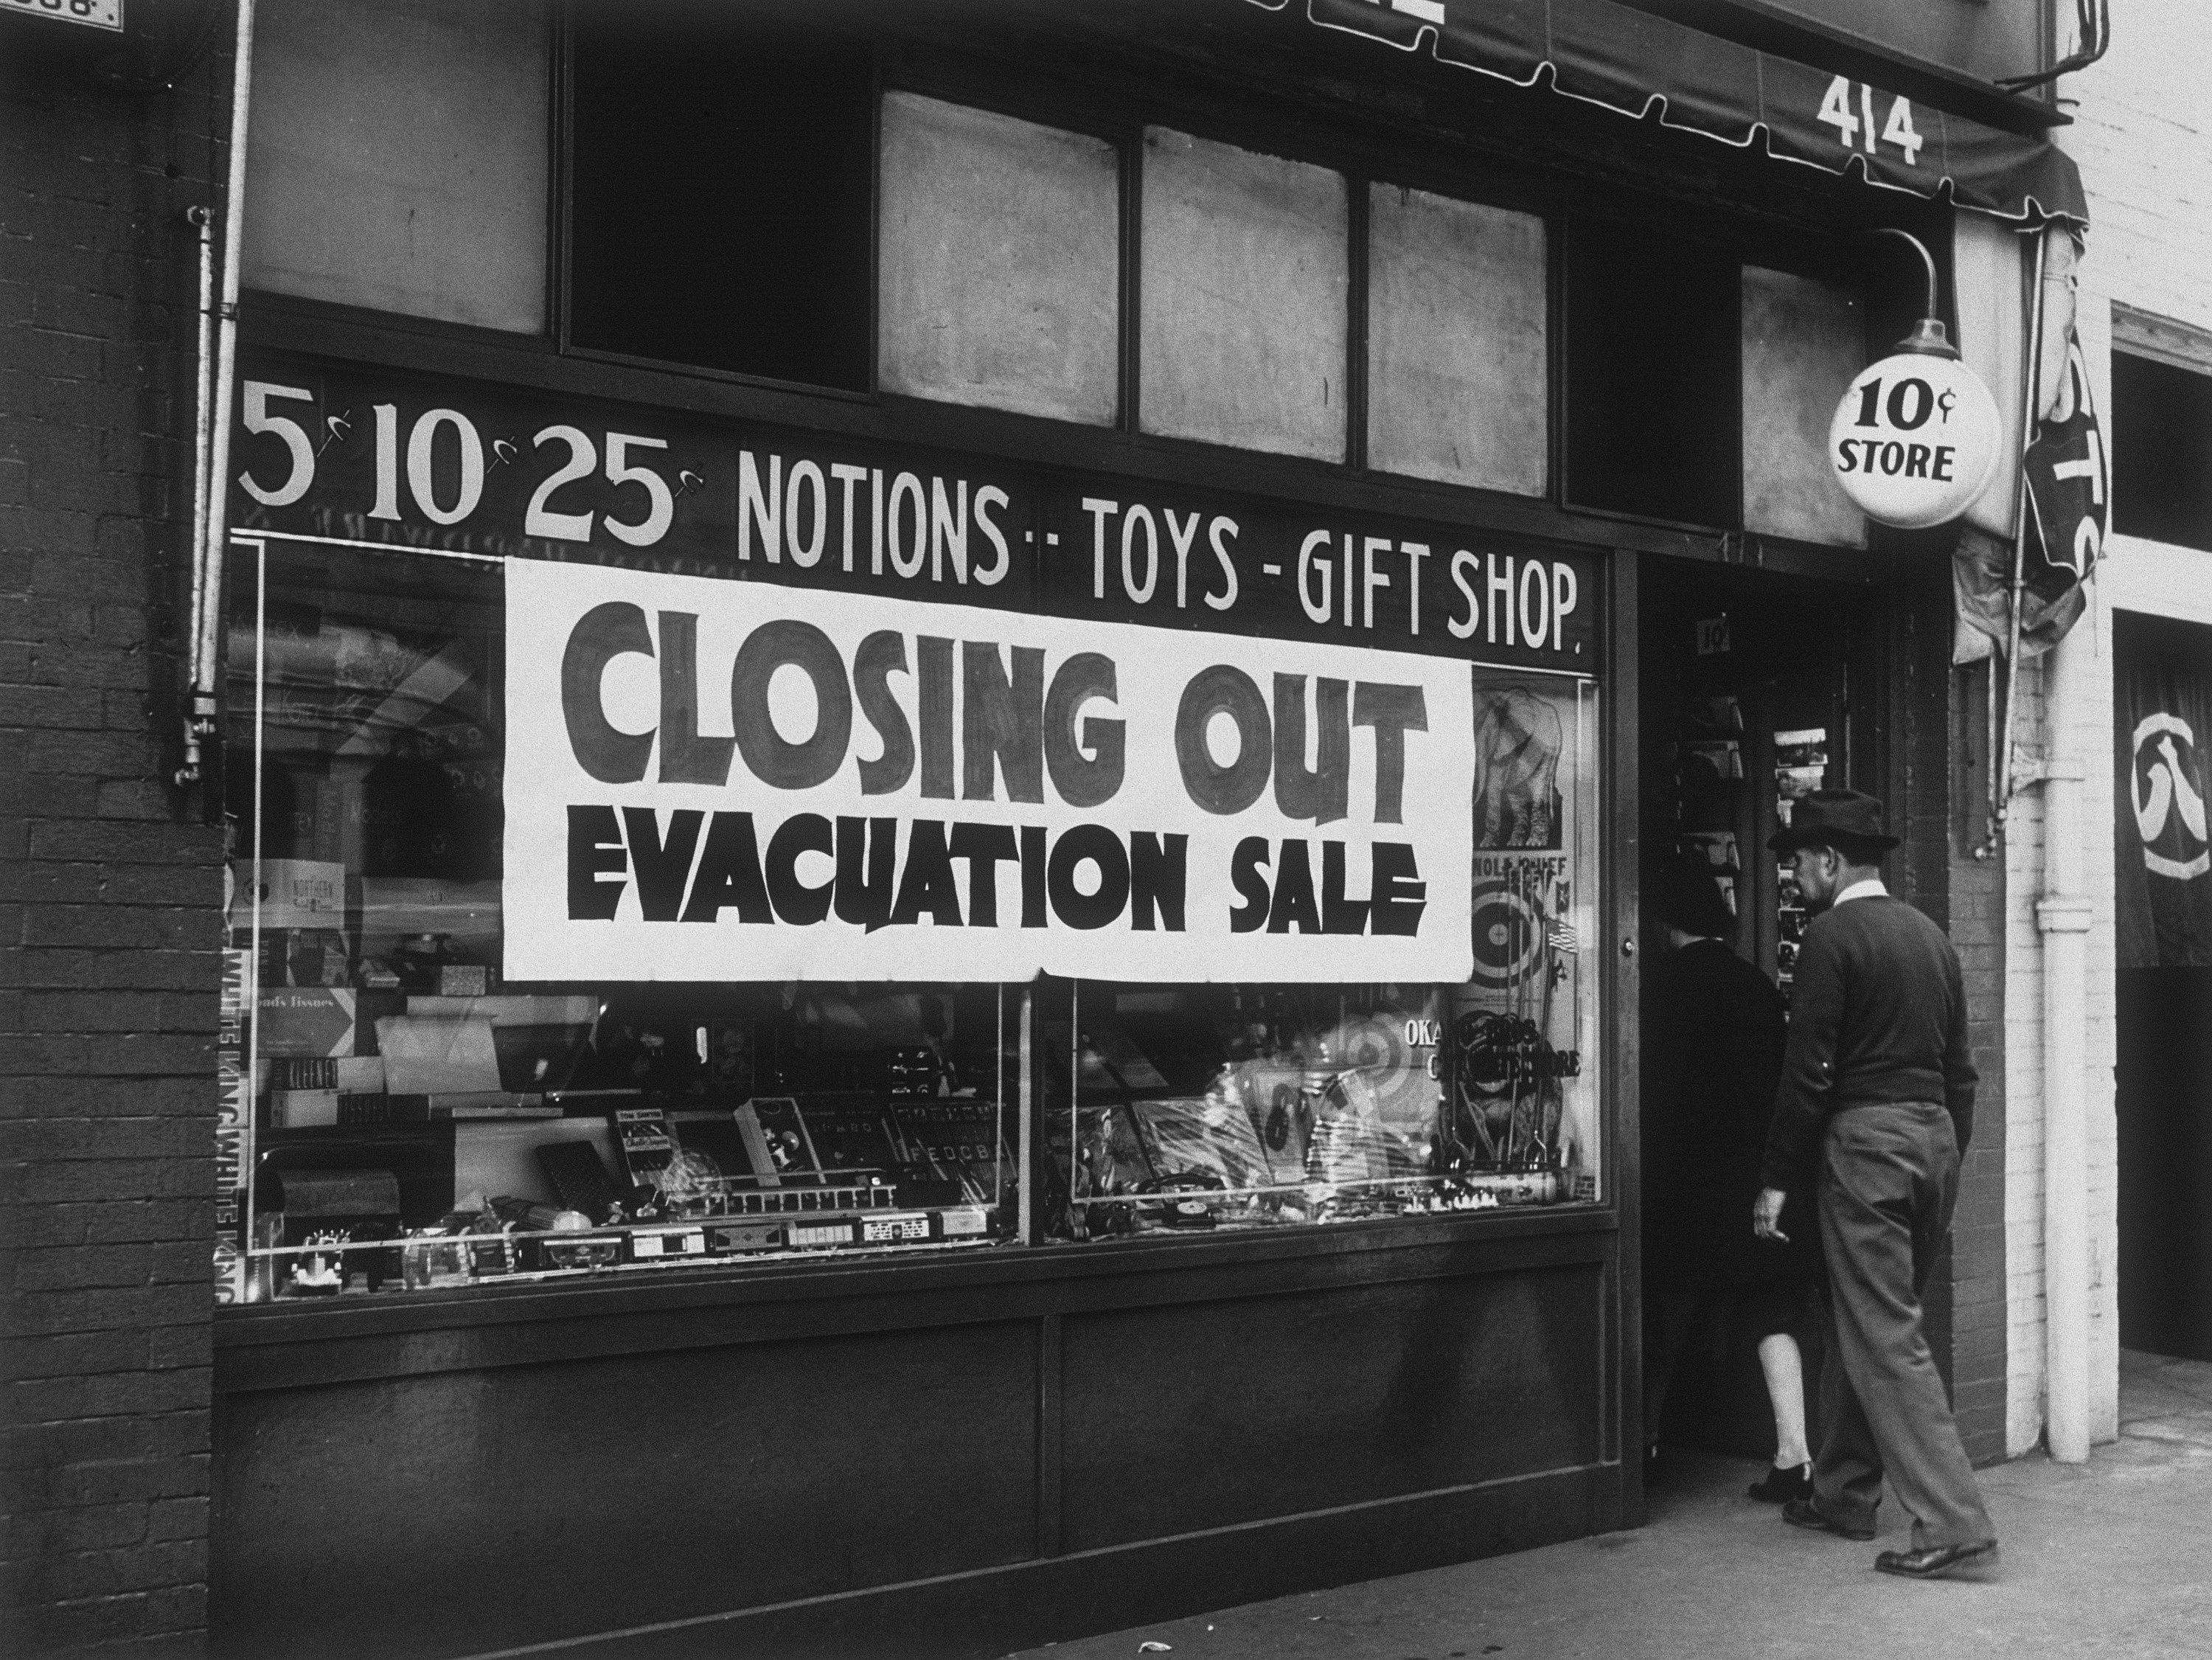 """A sign on the store says """"Closing Out Evacuation Sale"""""""